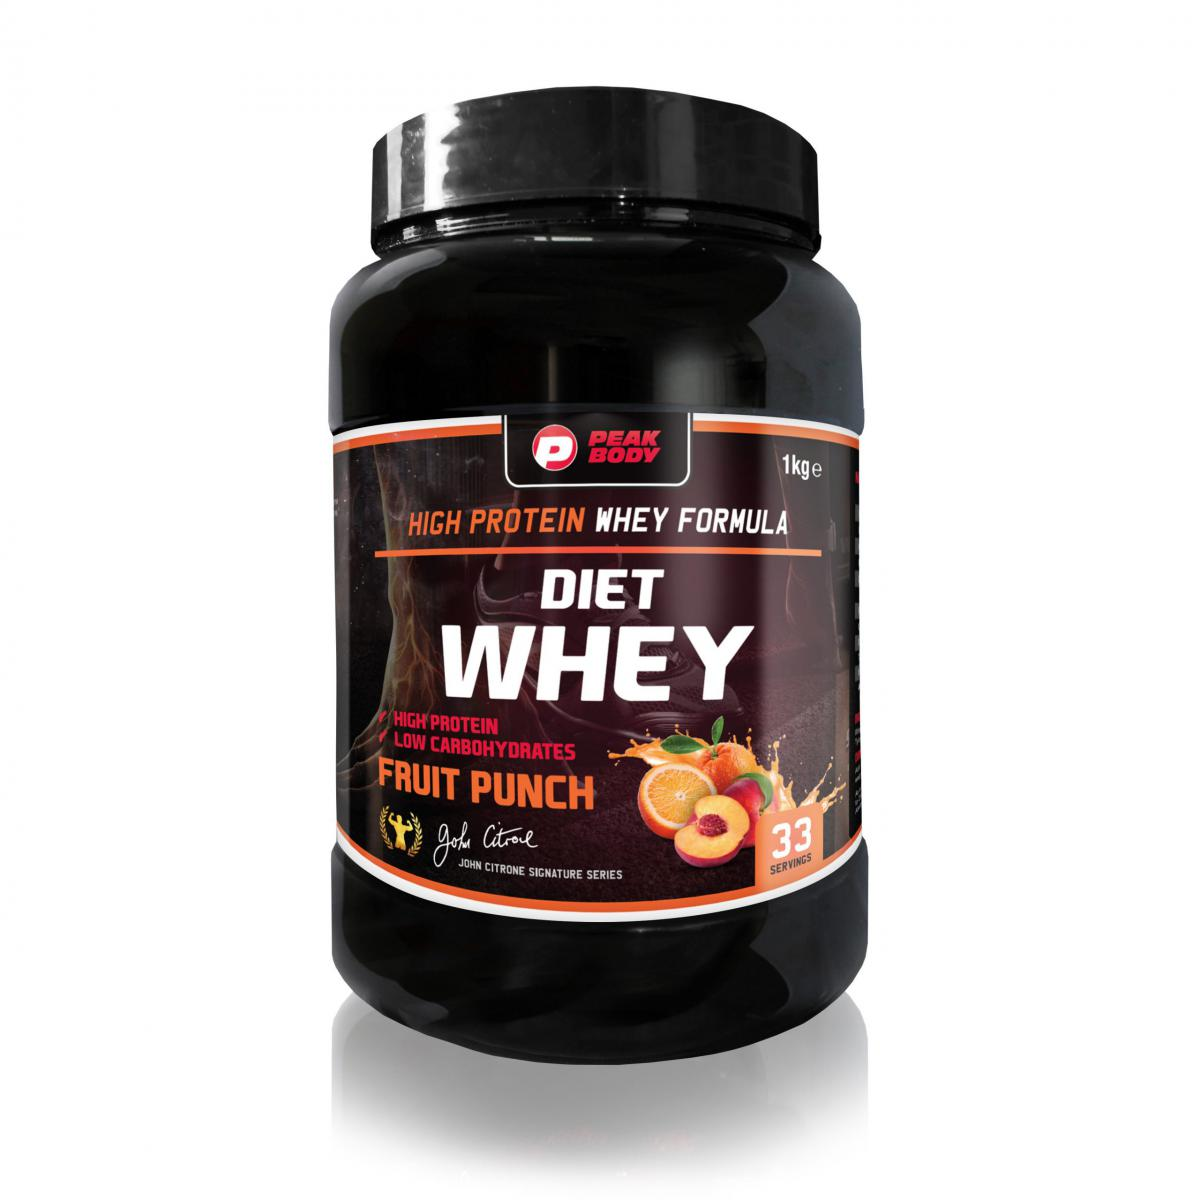 Why Getting In More Protein Matters When Losing Weight